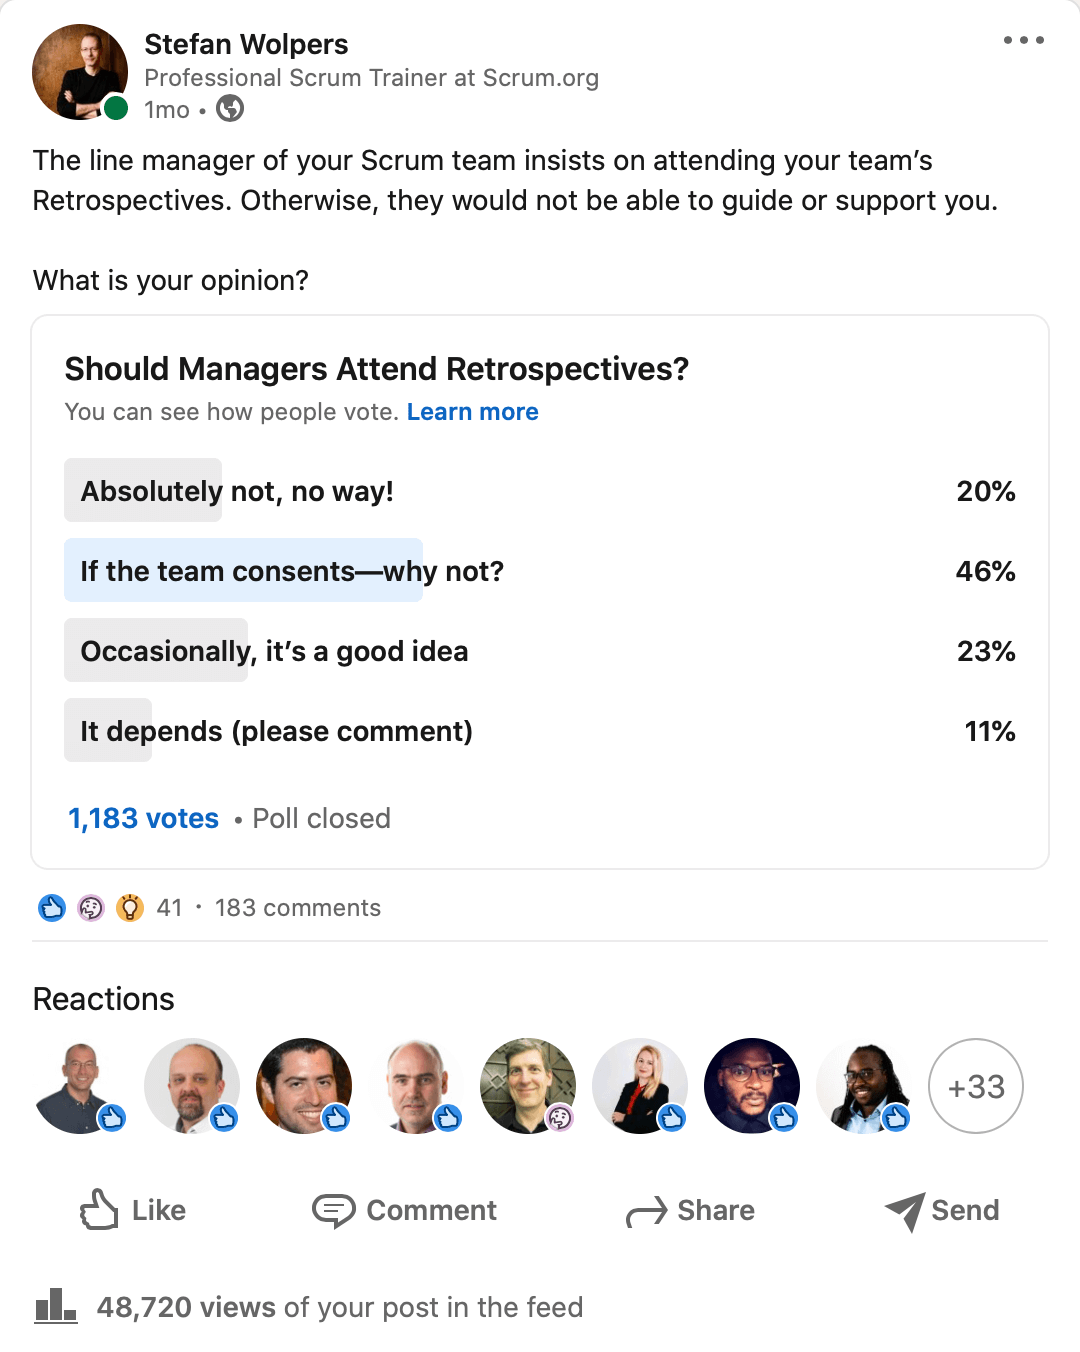 Managers attending Retrospectives?